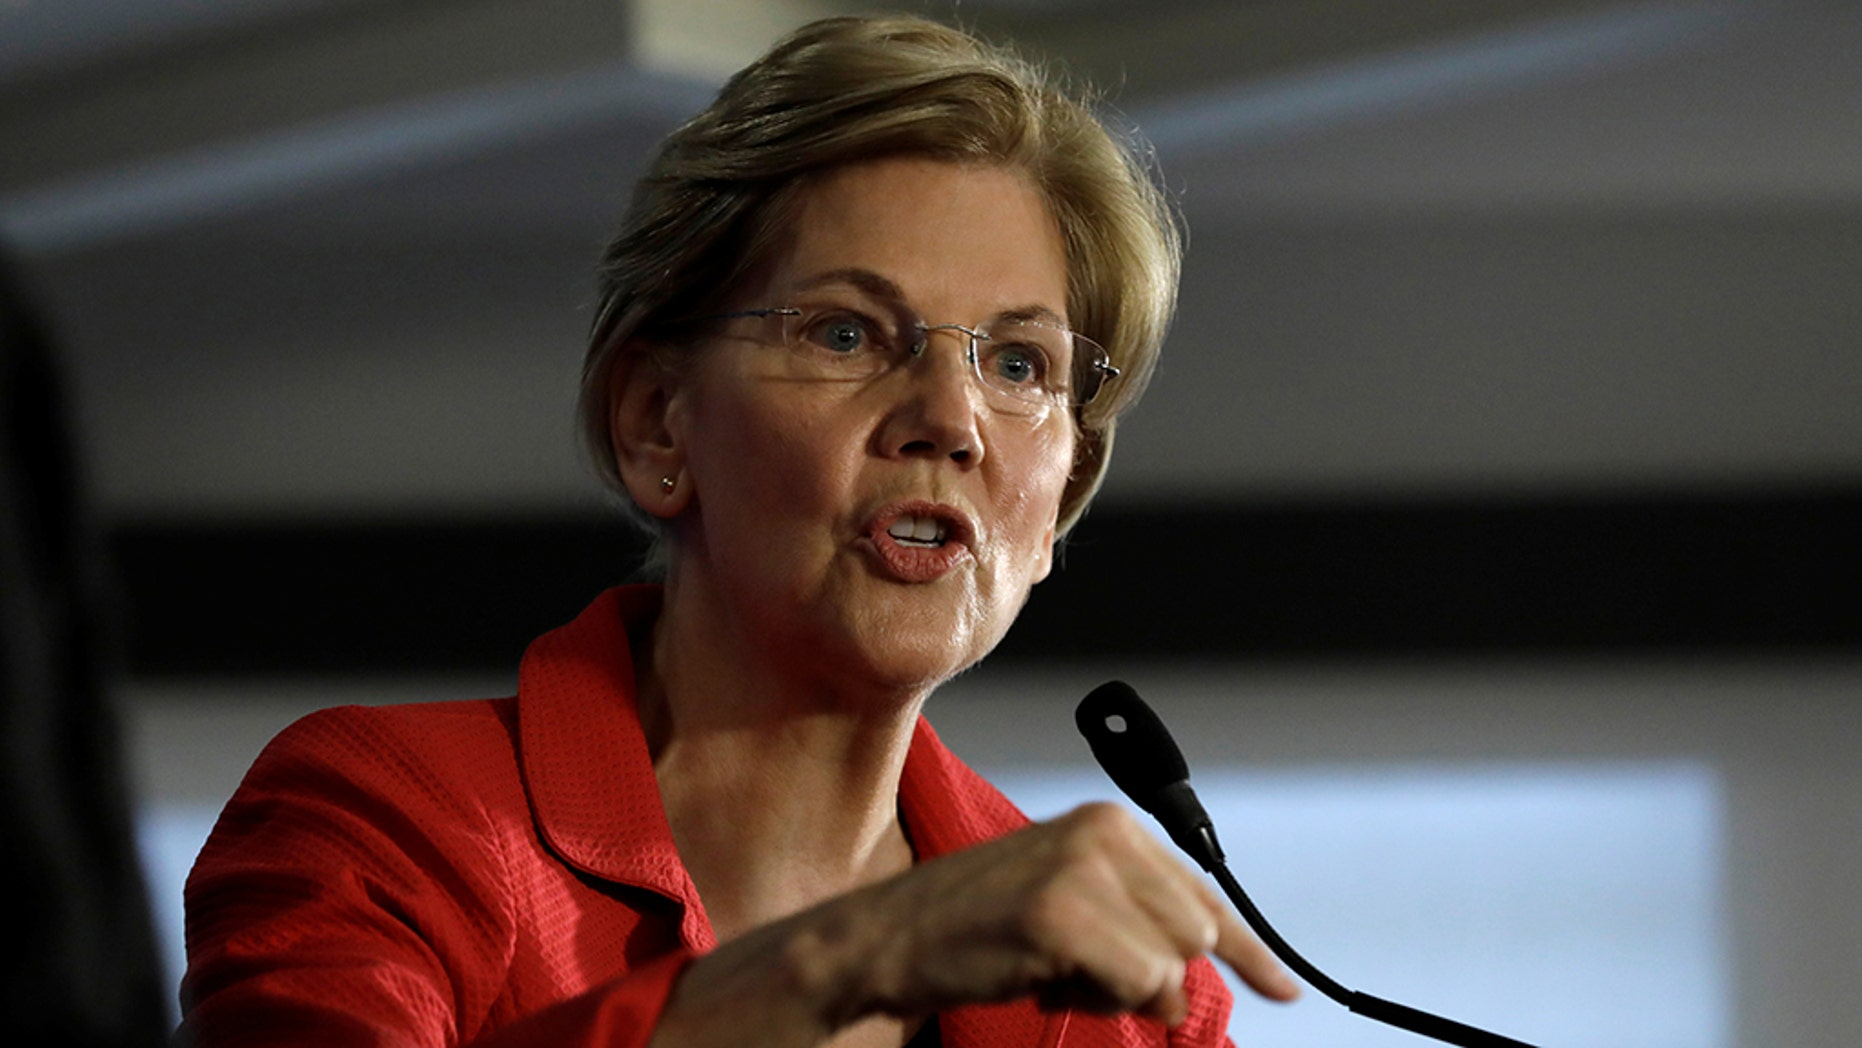 U.S. Sen. Elizabeth Warren, D-Mass., speaks in Washington, Aug. 21, 2018. (Reuters)